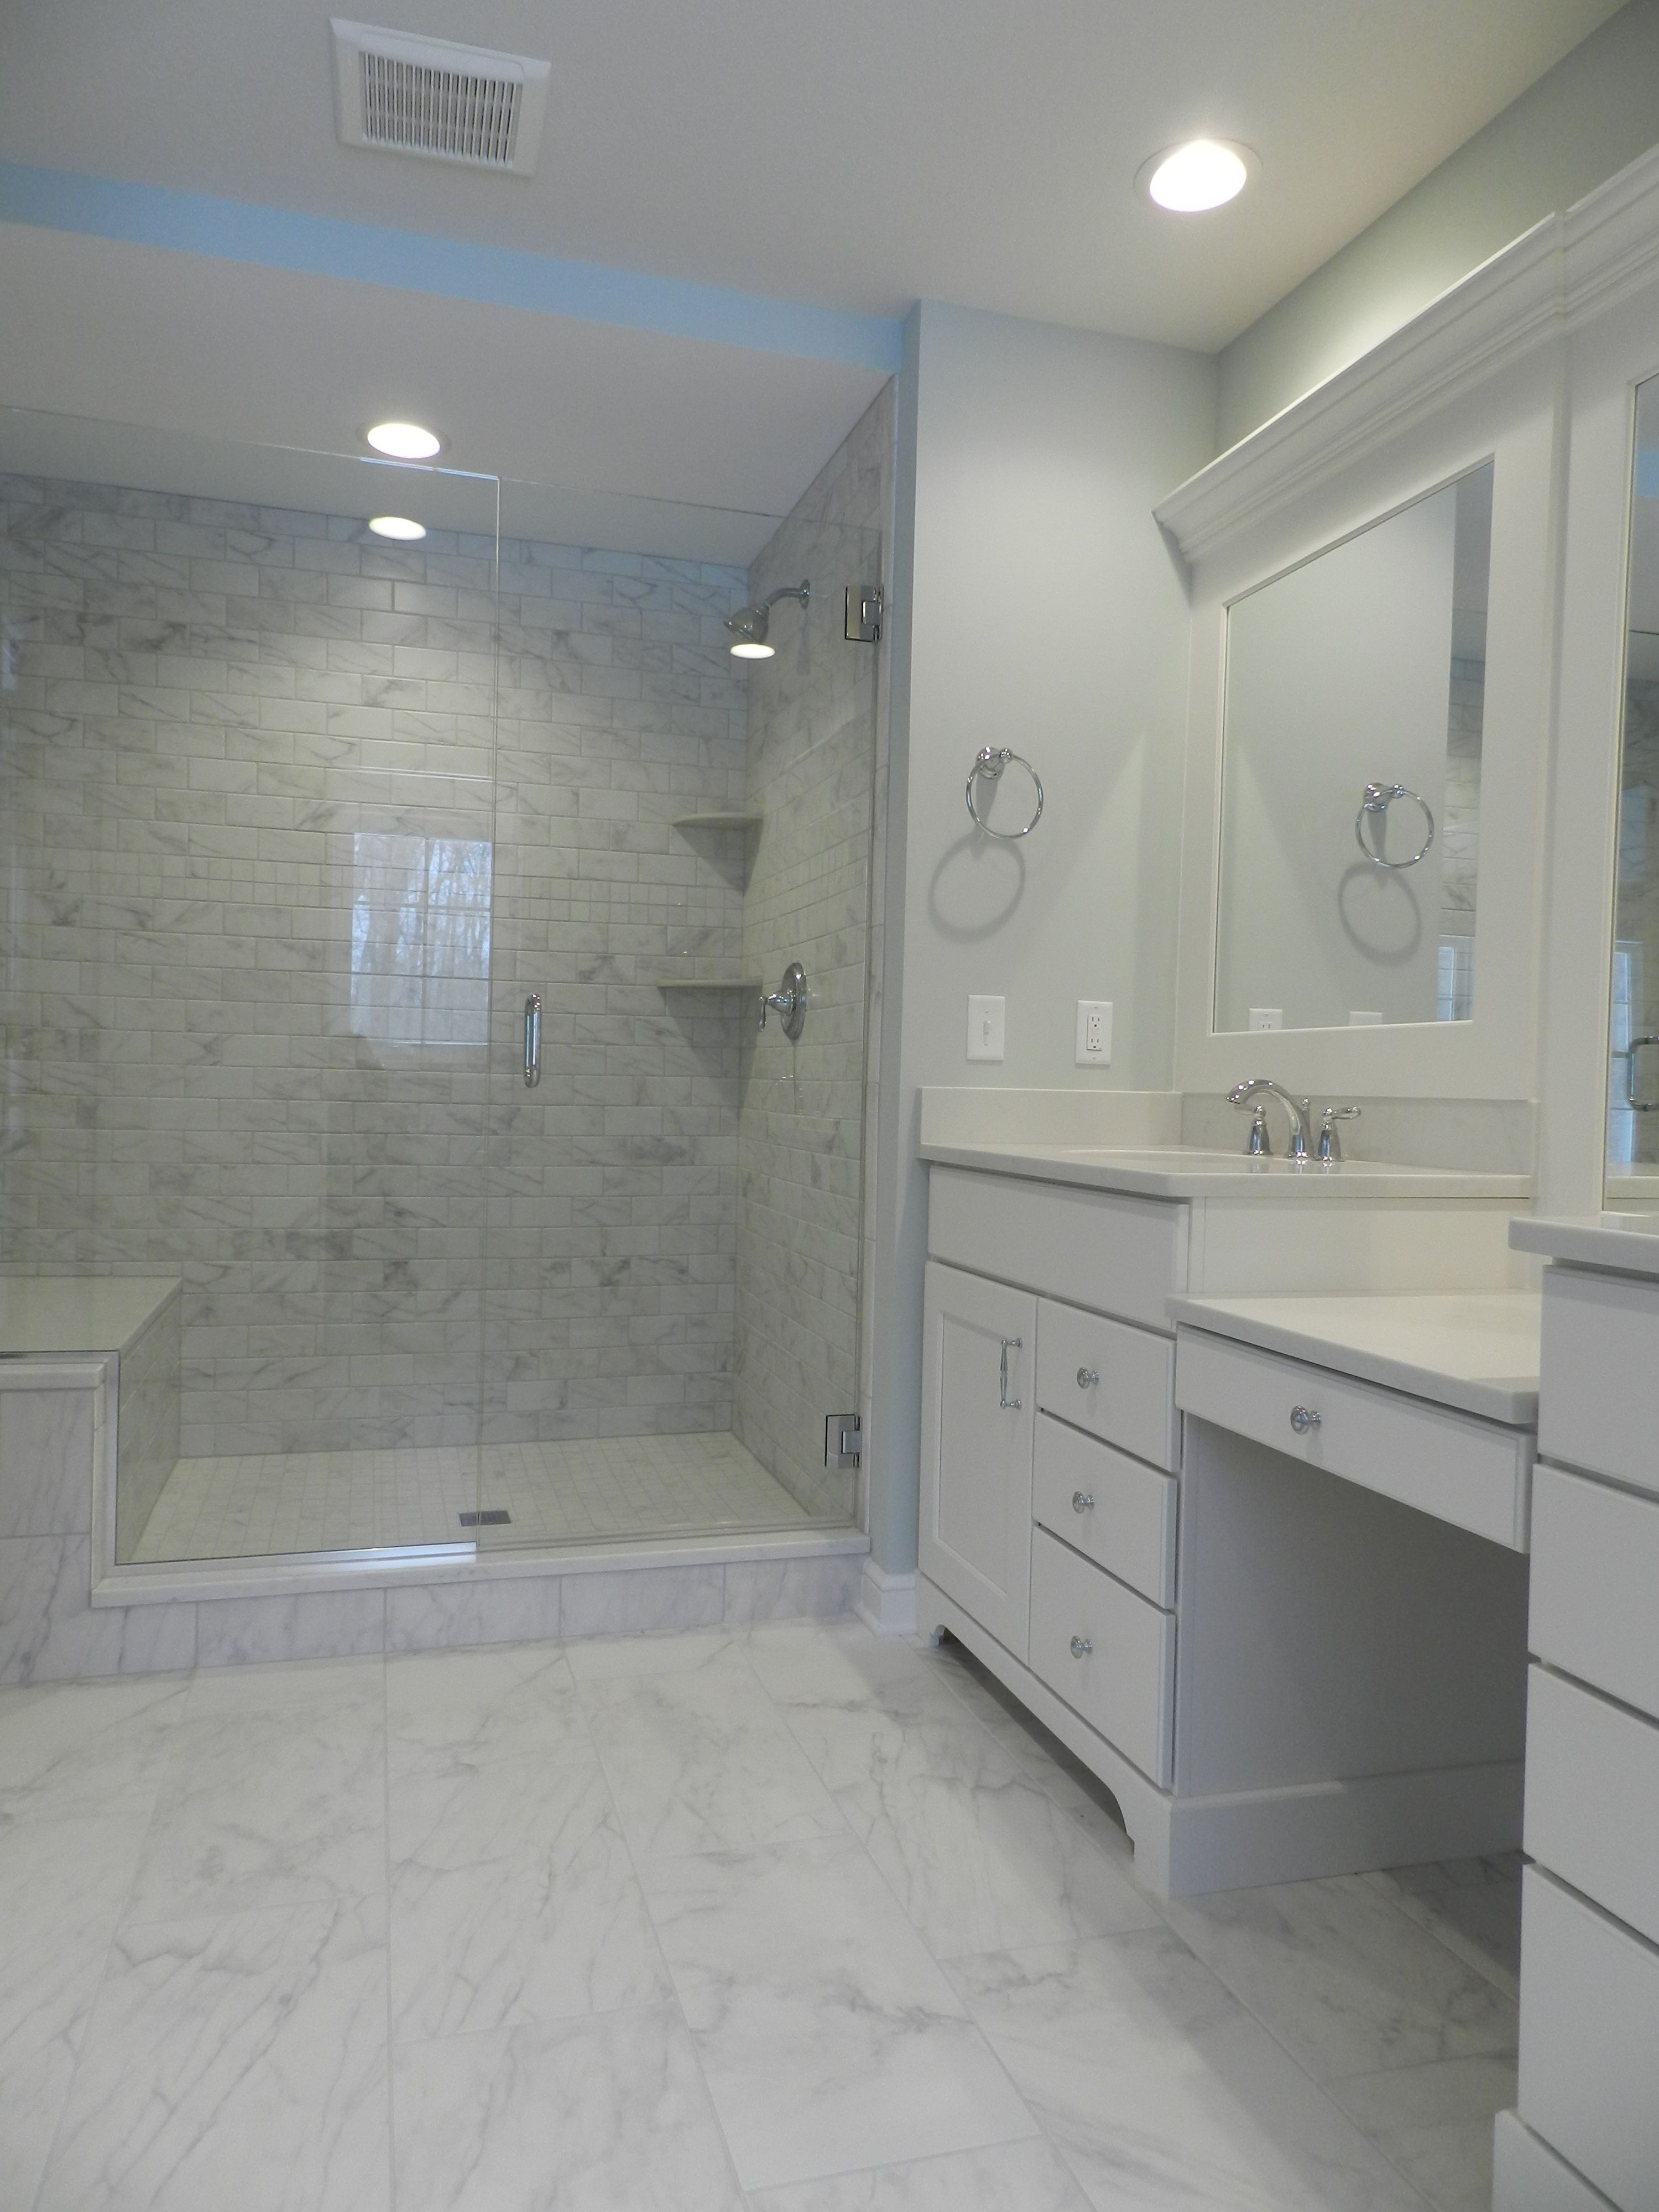 Bathroom featured in the Austin C1 By Classic Homes in Akron, OH